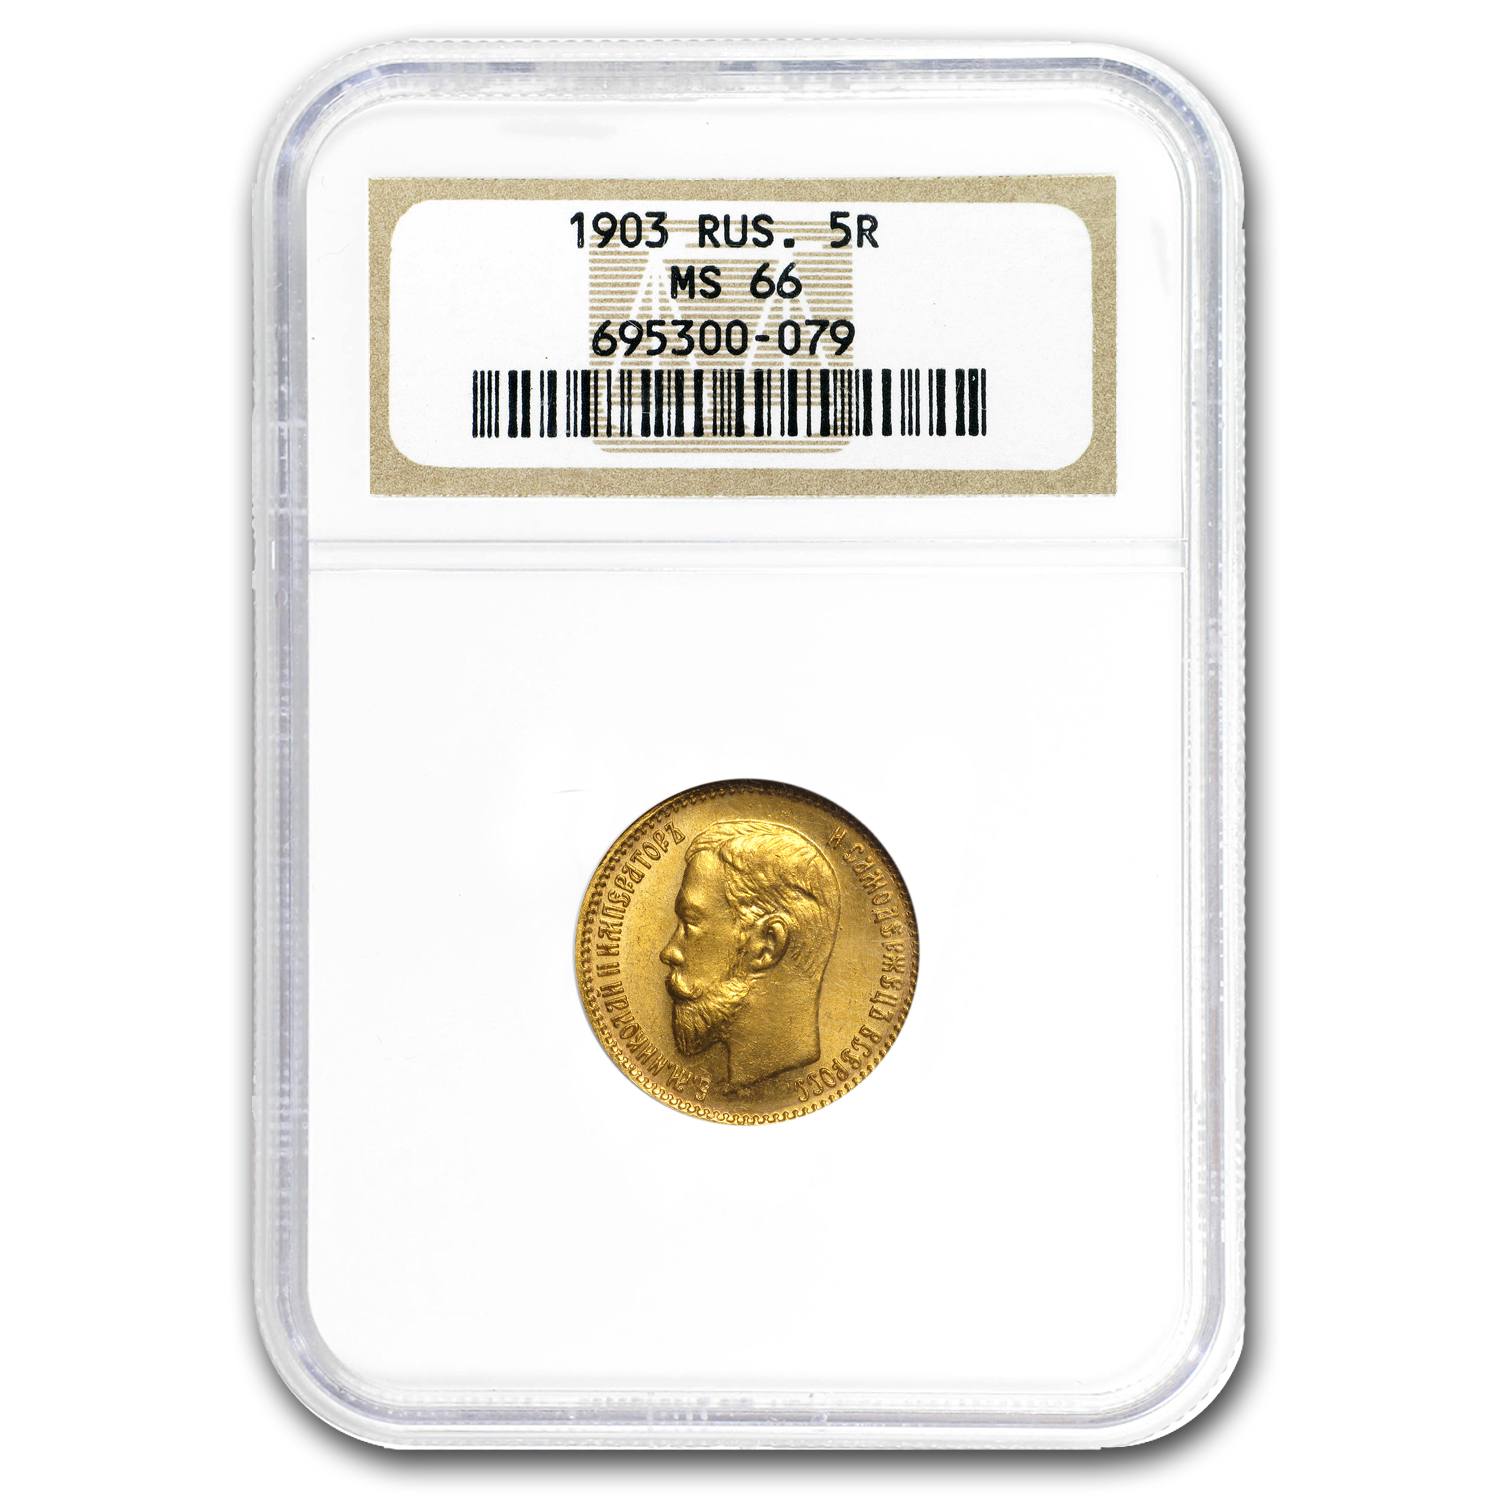 1903 Russia Gold 5 Roubles Nicholas II MS-66 NGC